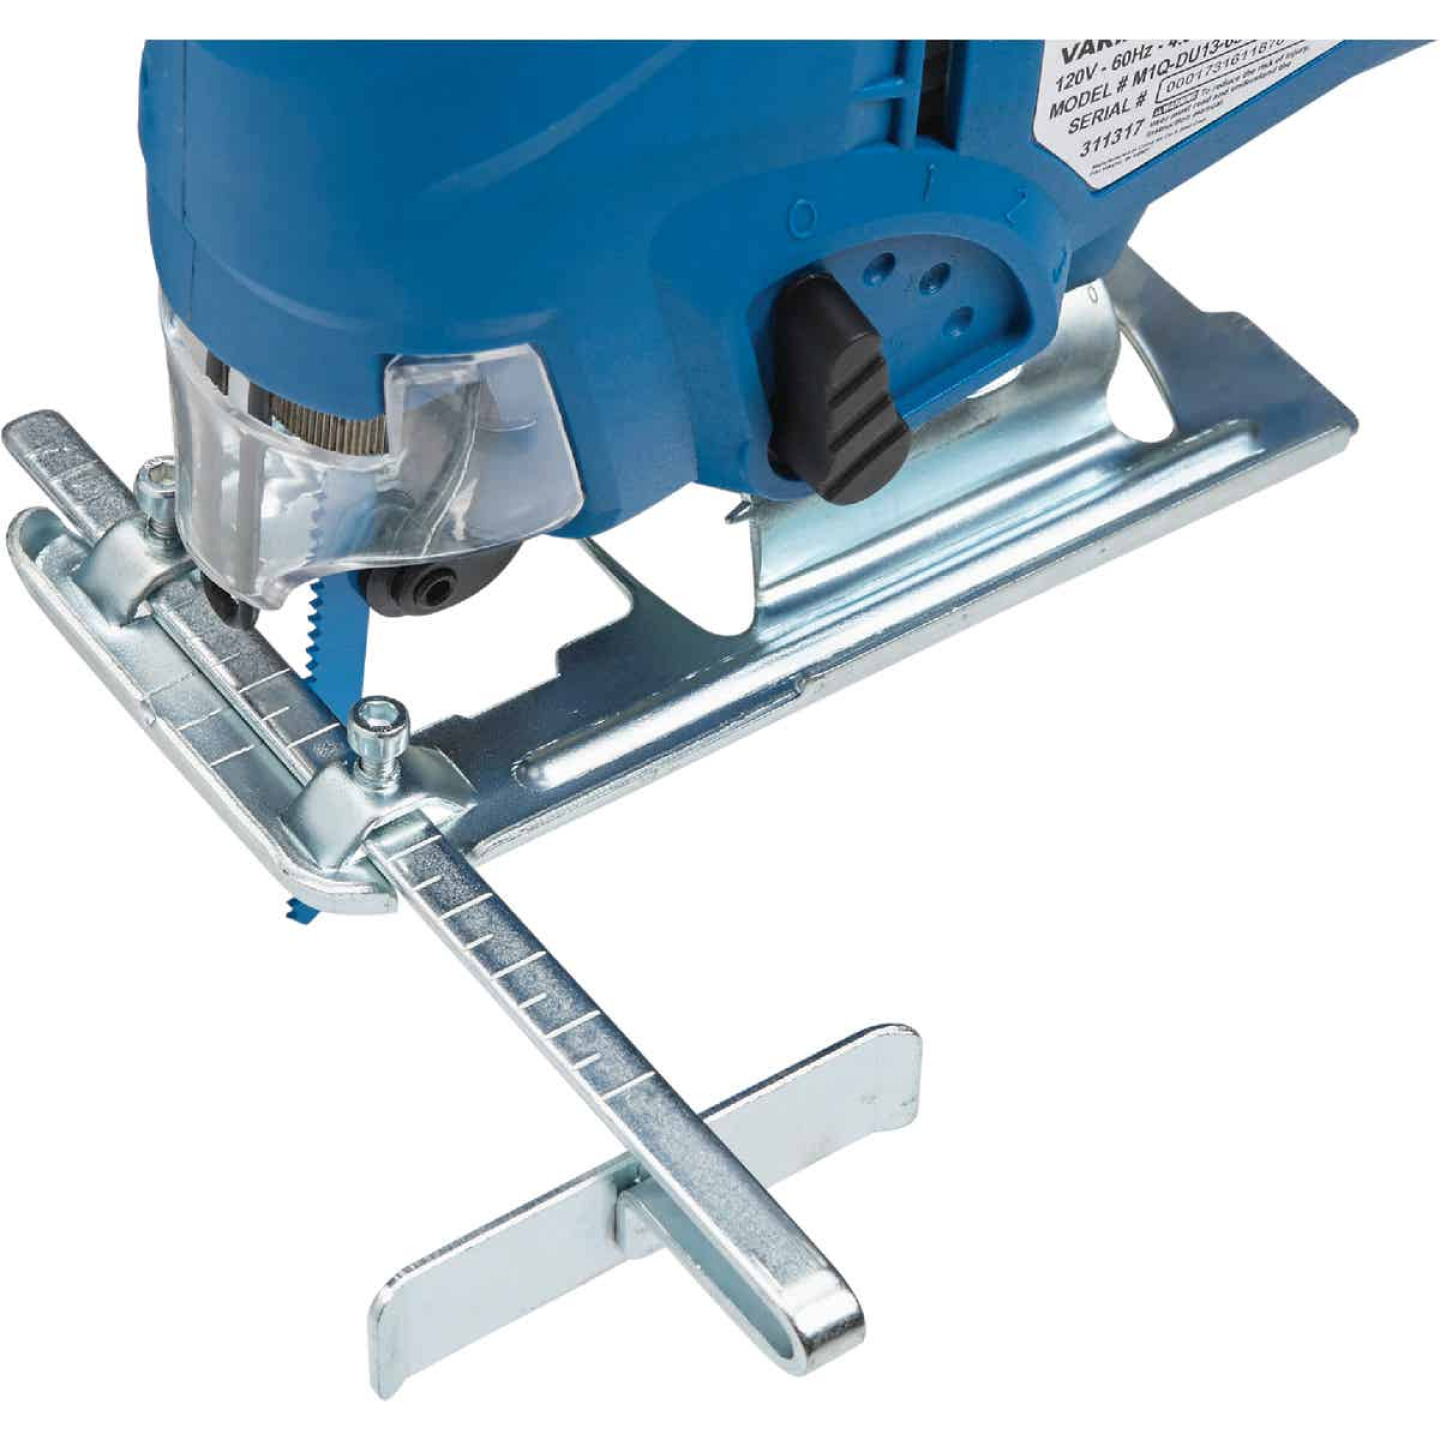 Project Pro 4.5A 0-3000 SPM Speed Jig Saw Image 12